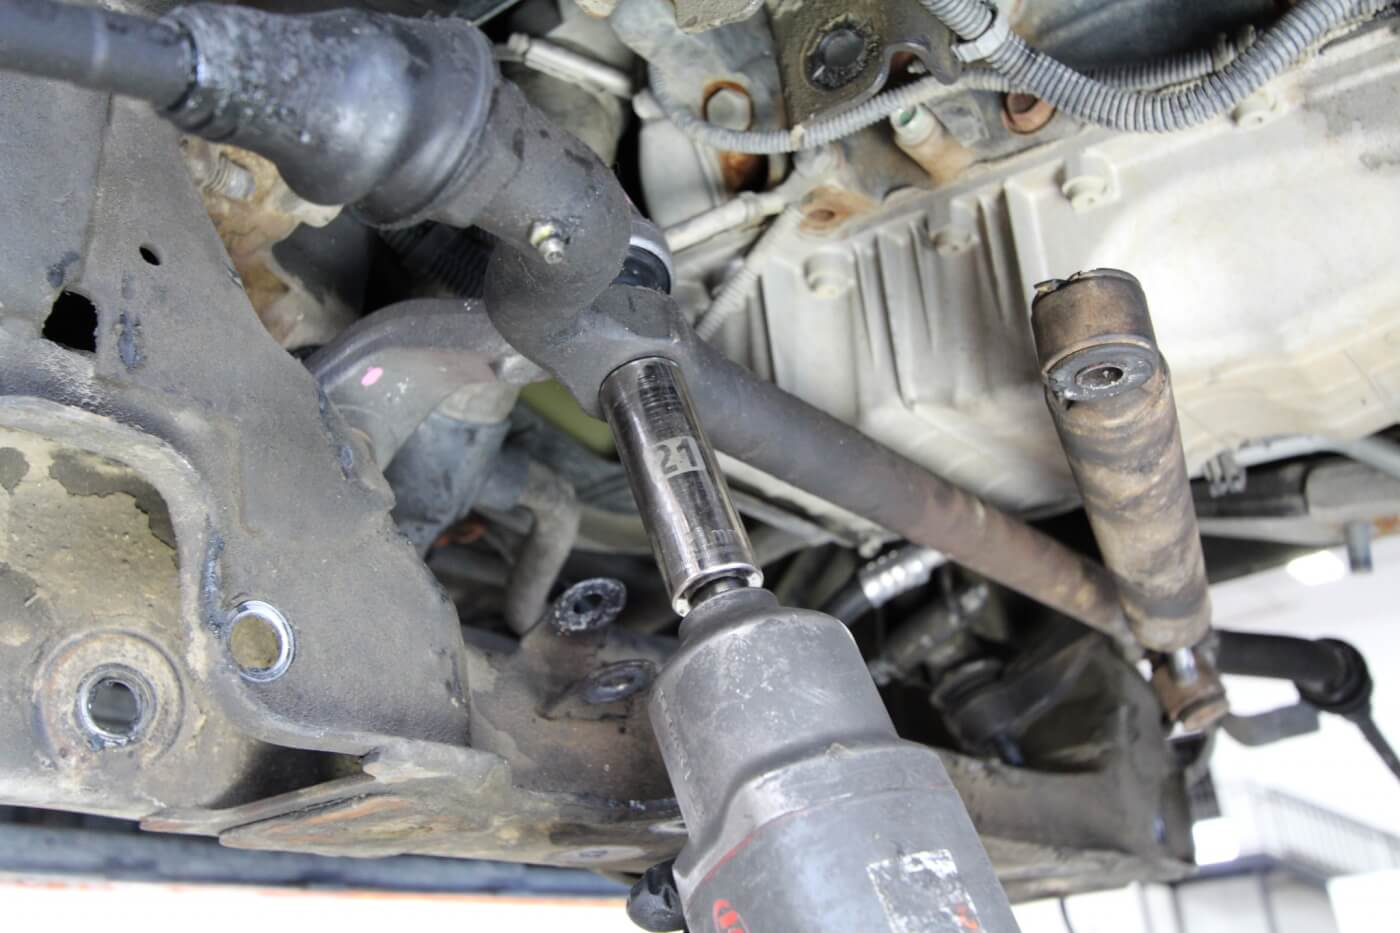 5. The IFS setup on the GM trucks has a center link that's connected to the pitman arm and idler arm. Here the link is being unbolted from the idler arm.